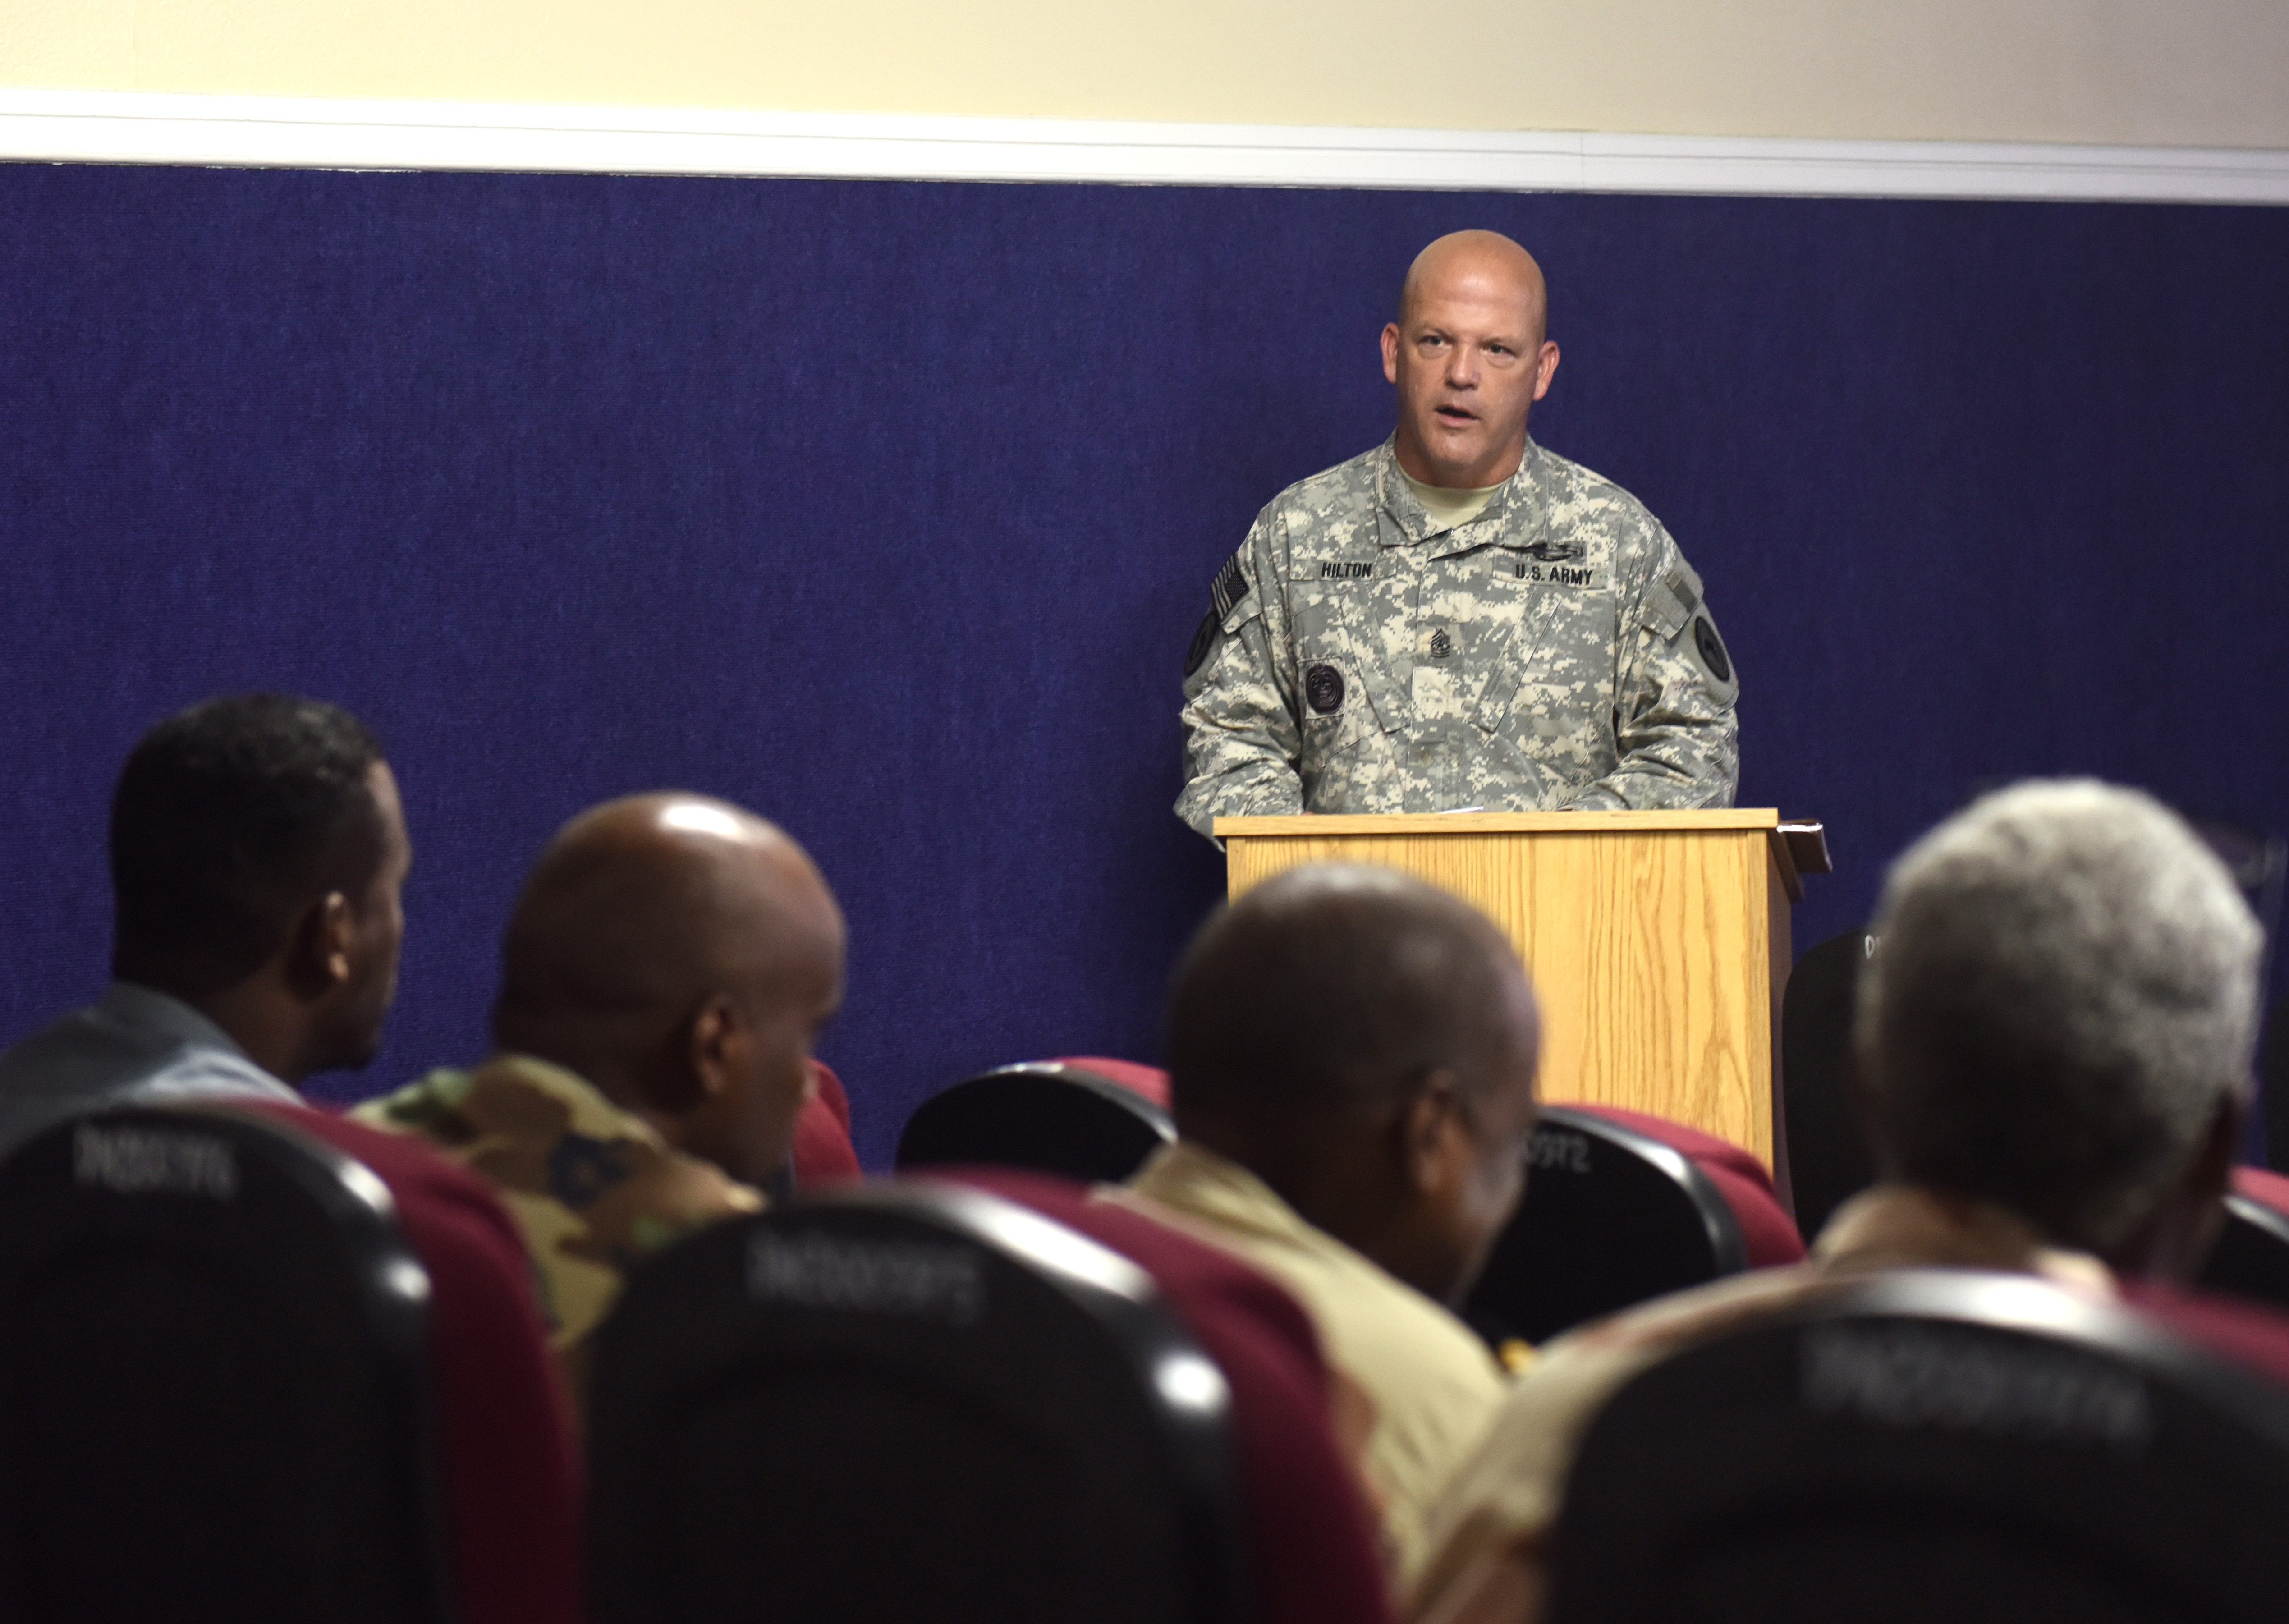 U.S. Army Sgt. Maj. John Hilton, Combined Joint Task Force-Horn of Africa Fusion Action Cell lessons learned officer, speaks to senior enlisted leaders of the Djibouti Armed Forces Dec. 29, 2015, at Camp Lemonnier, Djibouti. Key leaders shared knowledge with Djiboutian SELs during their first visit to the base. (U.S. Air Force photo by Staff Sgt. Kate Thornton)